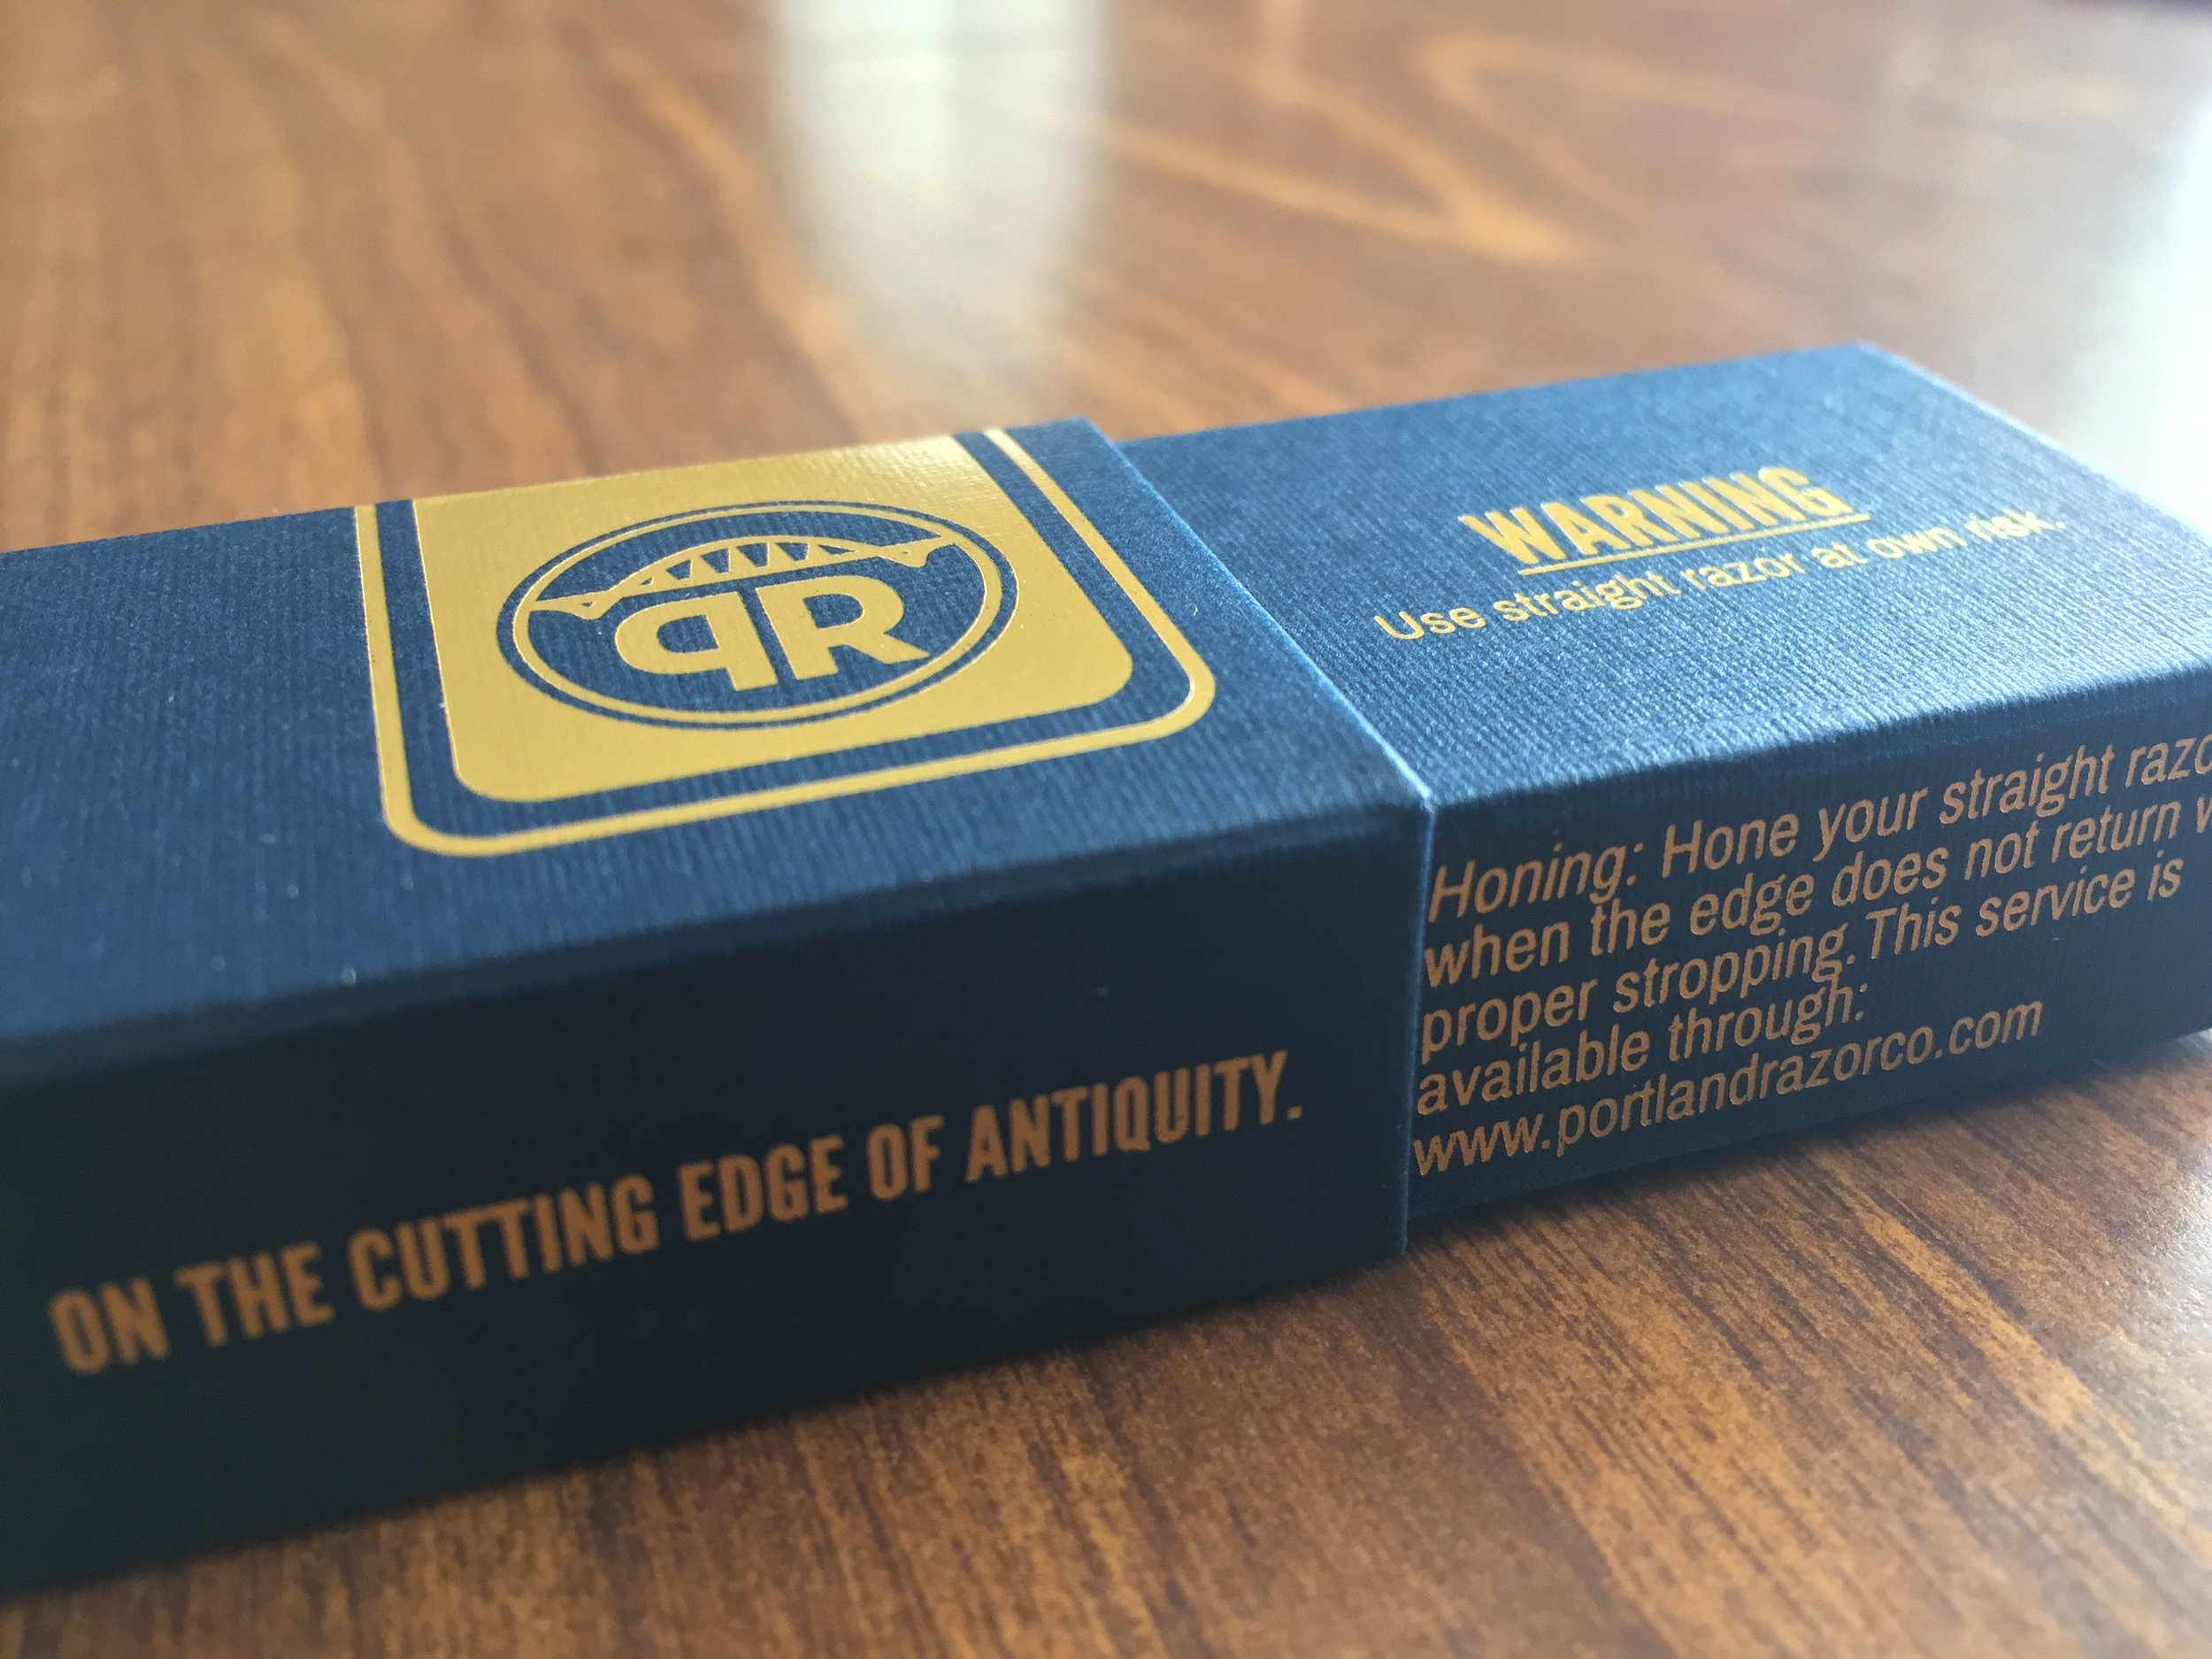 The box in which the razor comes features a warning about the risks of wet shaving.